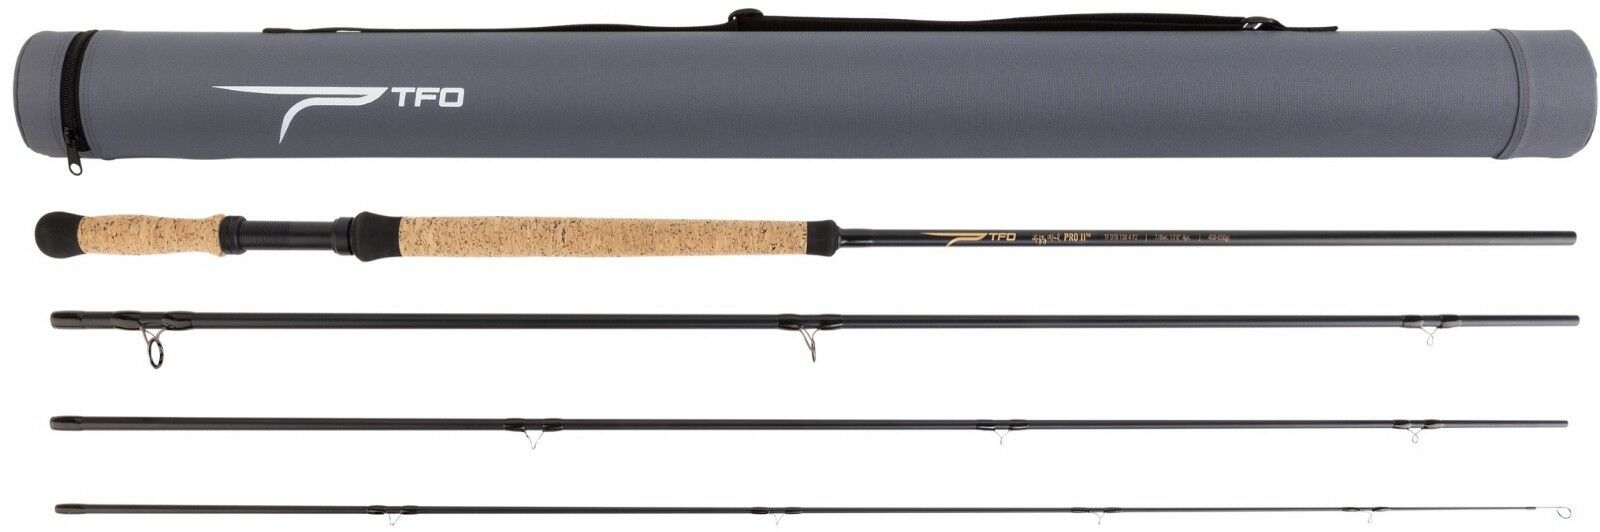 Tfo temple Fork Outfitters Profesional Serie II 12' 6   6 7 P caña Spey para mosca 4PC